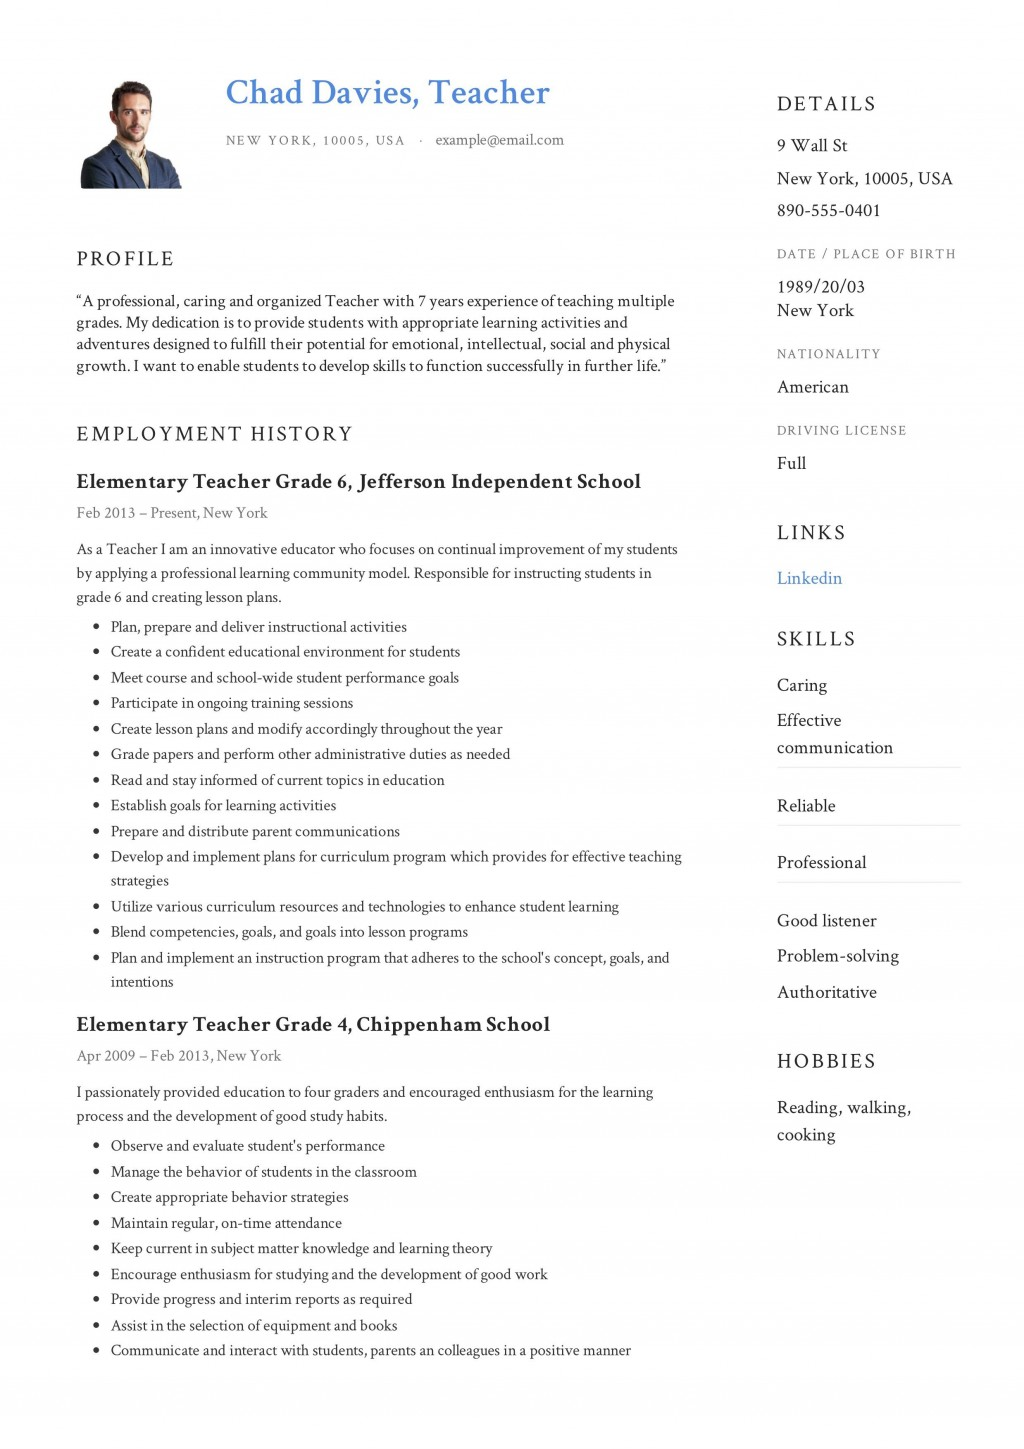 006 Breathtaking Resume Sample For Teaching Job In India Highest Quality  School Principal PositionLarge